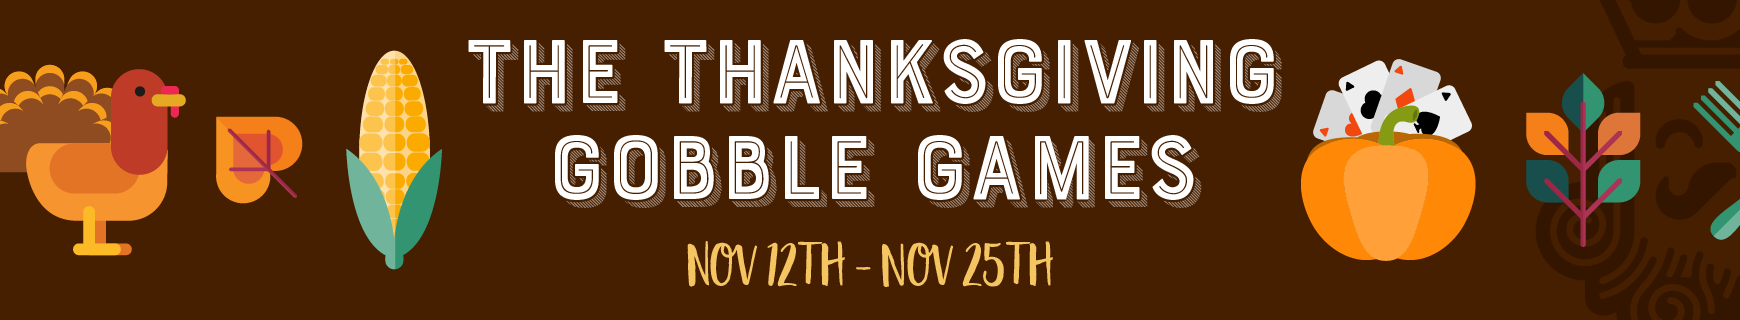 The thanksgiving gobble games %28870 x 160%29 2x %281%29